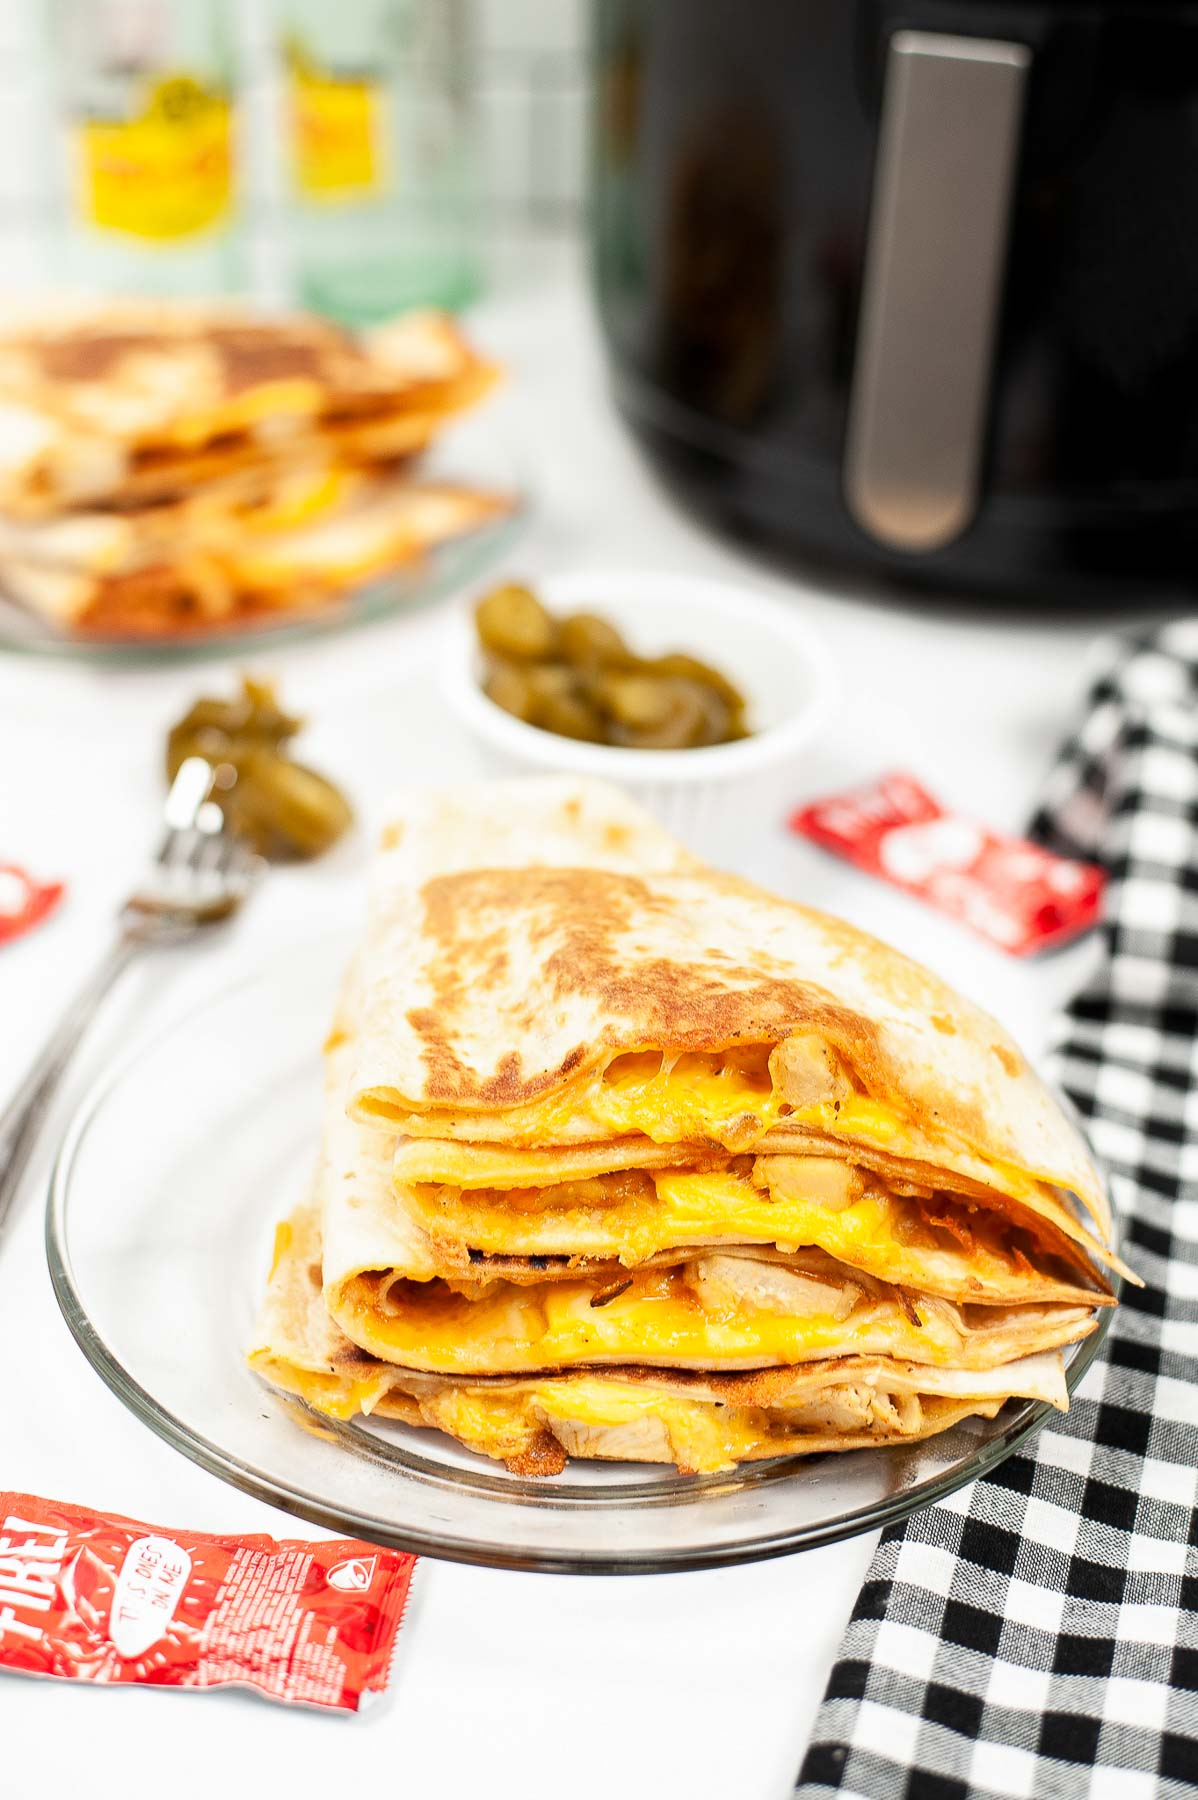 Taco bell chicken quesadilla on a plate next to air fryer and garnish.